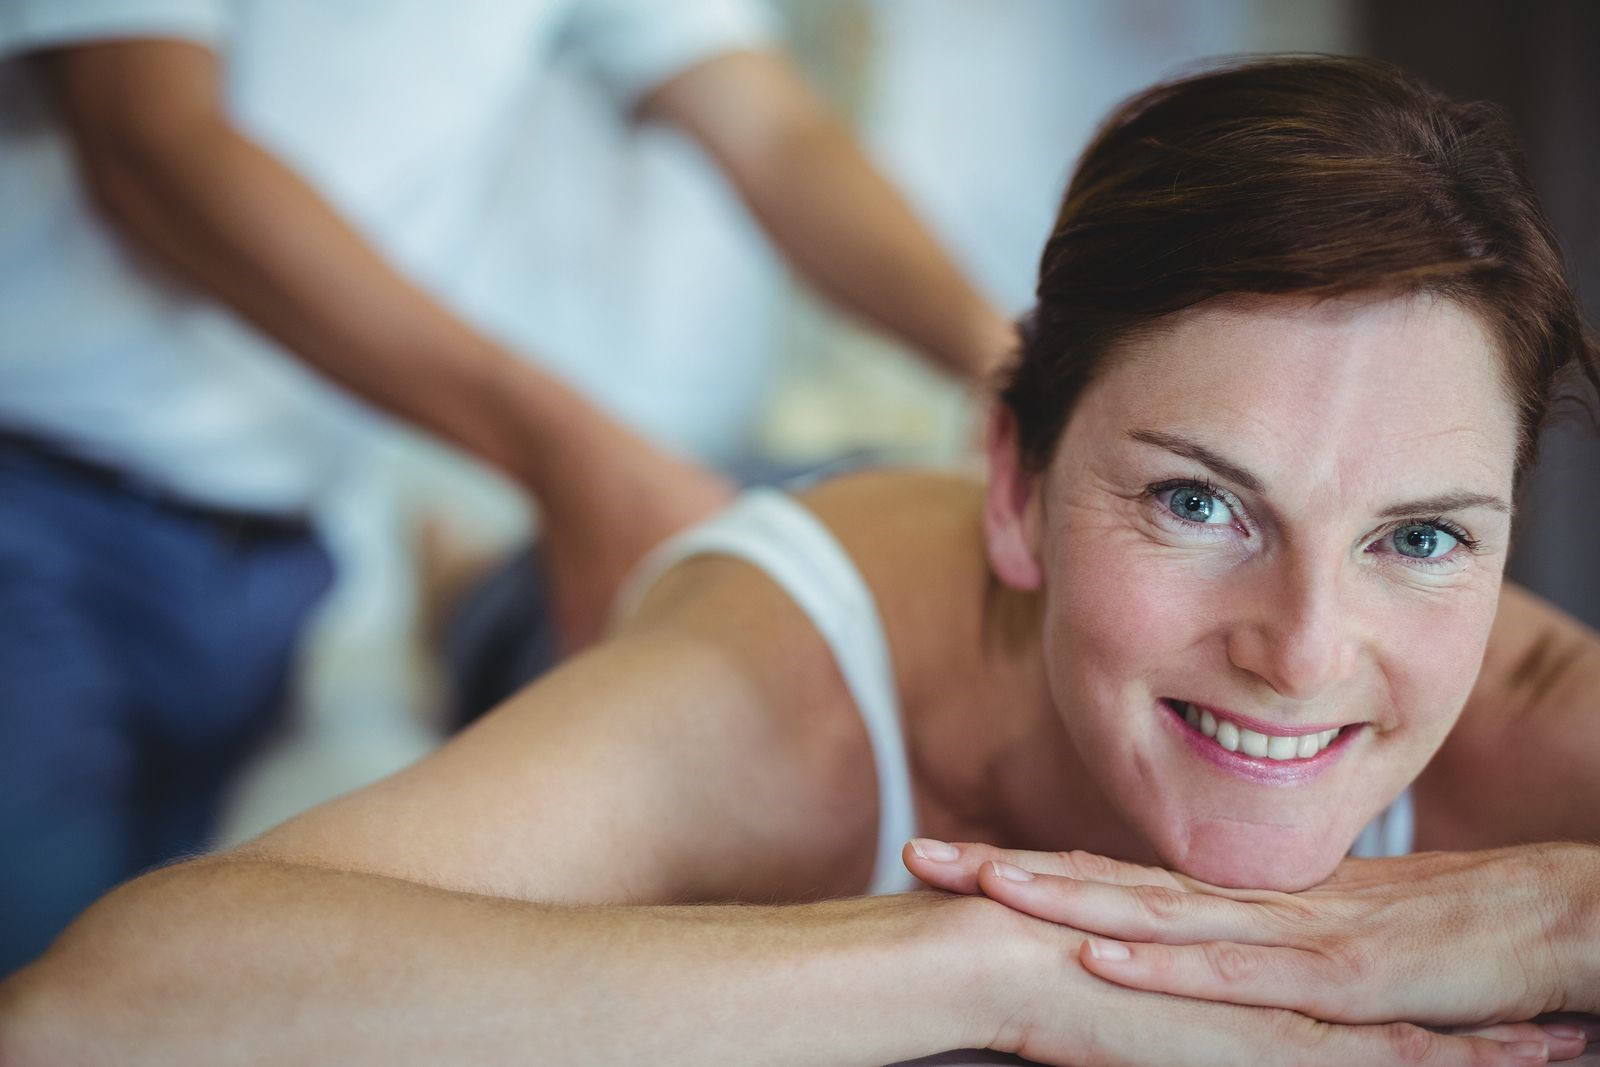 Physiotherapy Procedures Can Alleviate Joint and Soft Tissue Pain